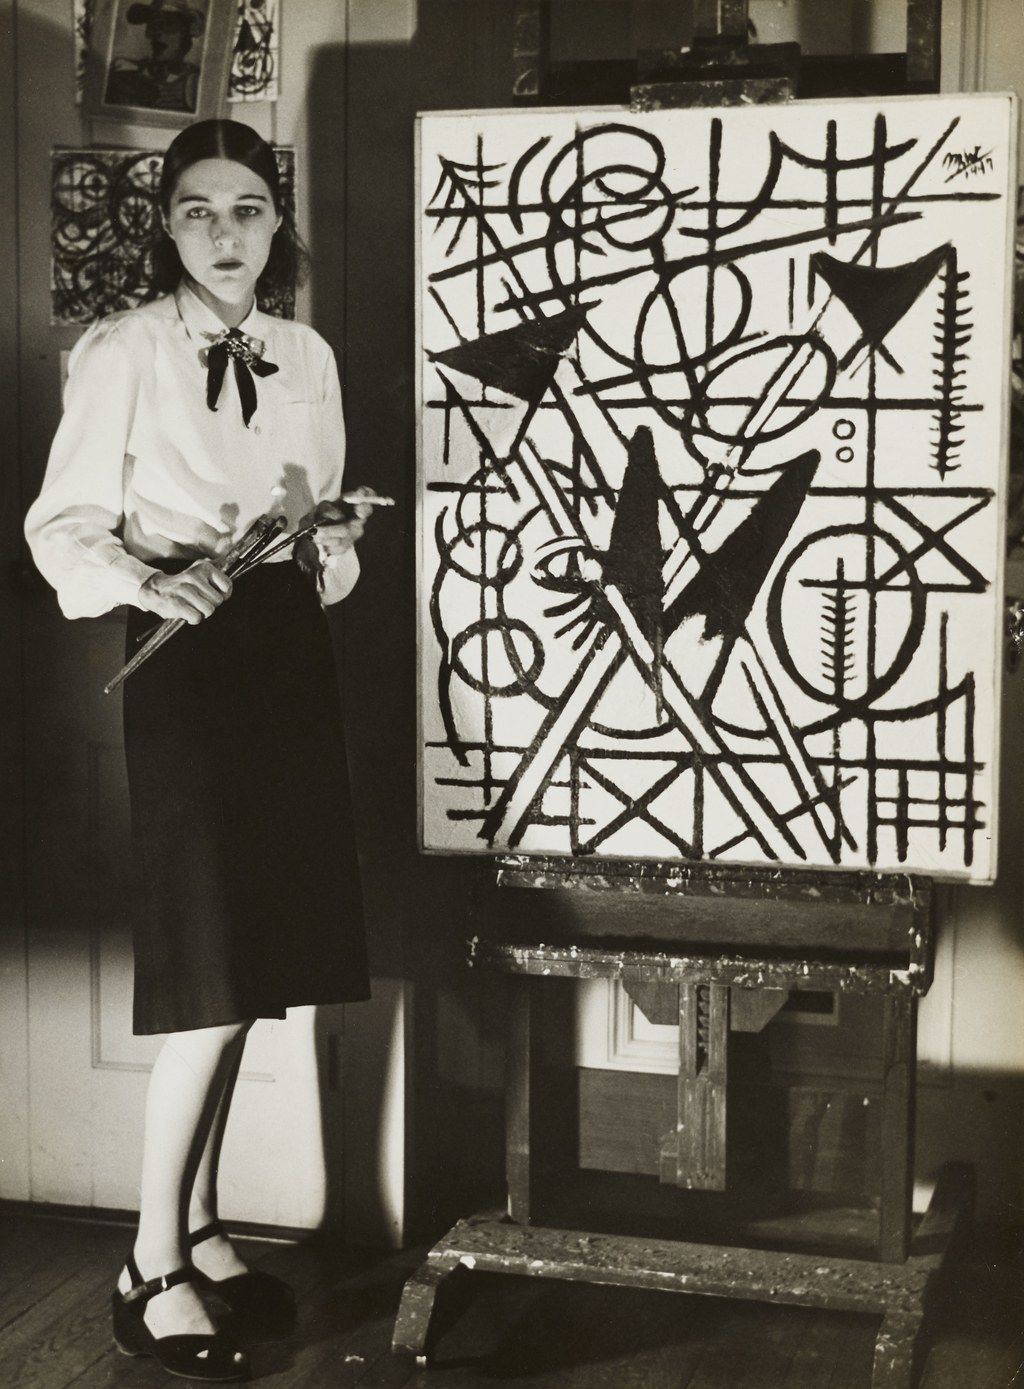 Remembering Michael West, a Forgotten Founder of Abstract Expressionism in 2020 | Abstract expressionist, Abstract artists, Modern art abstract